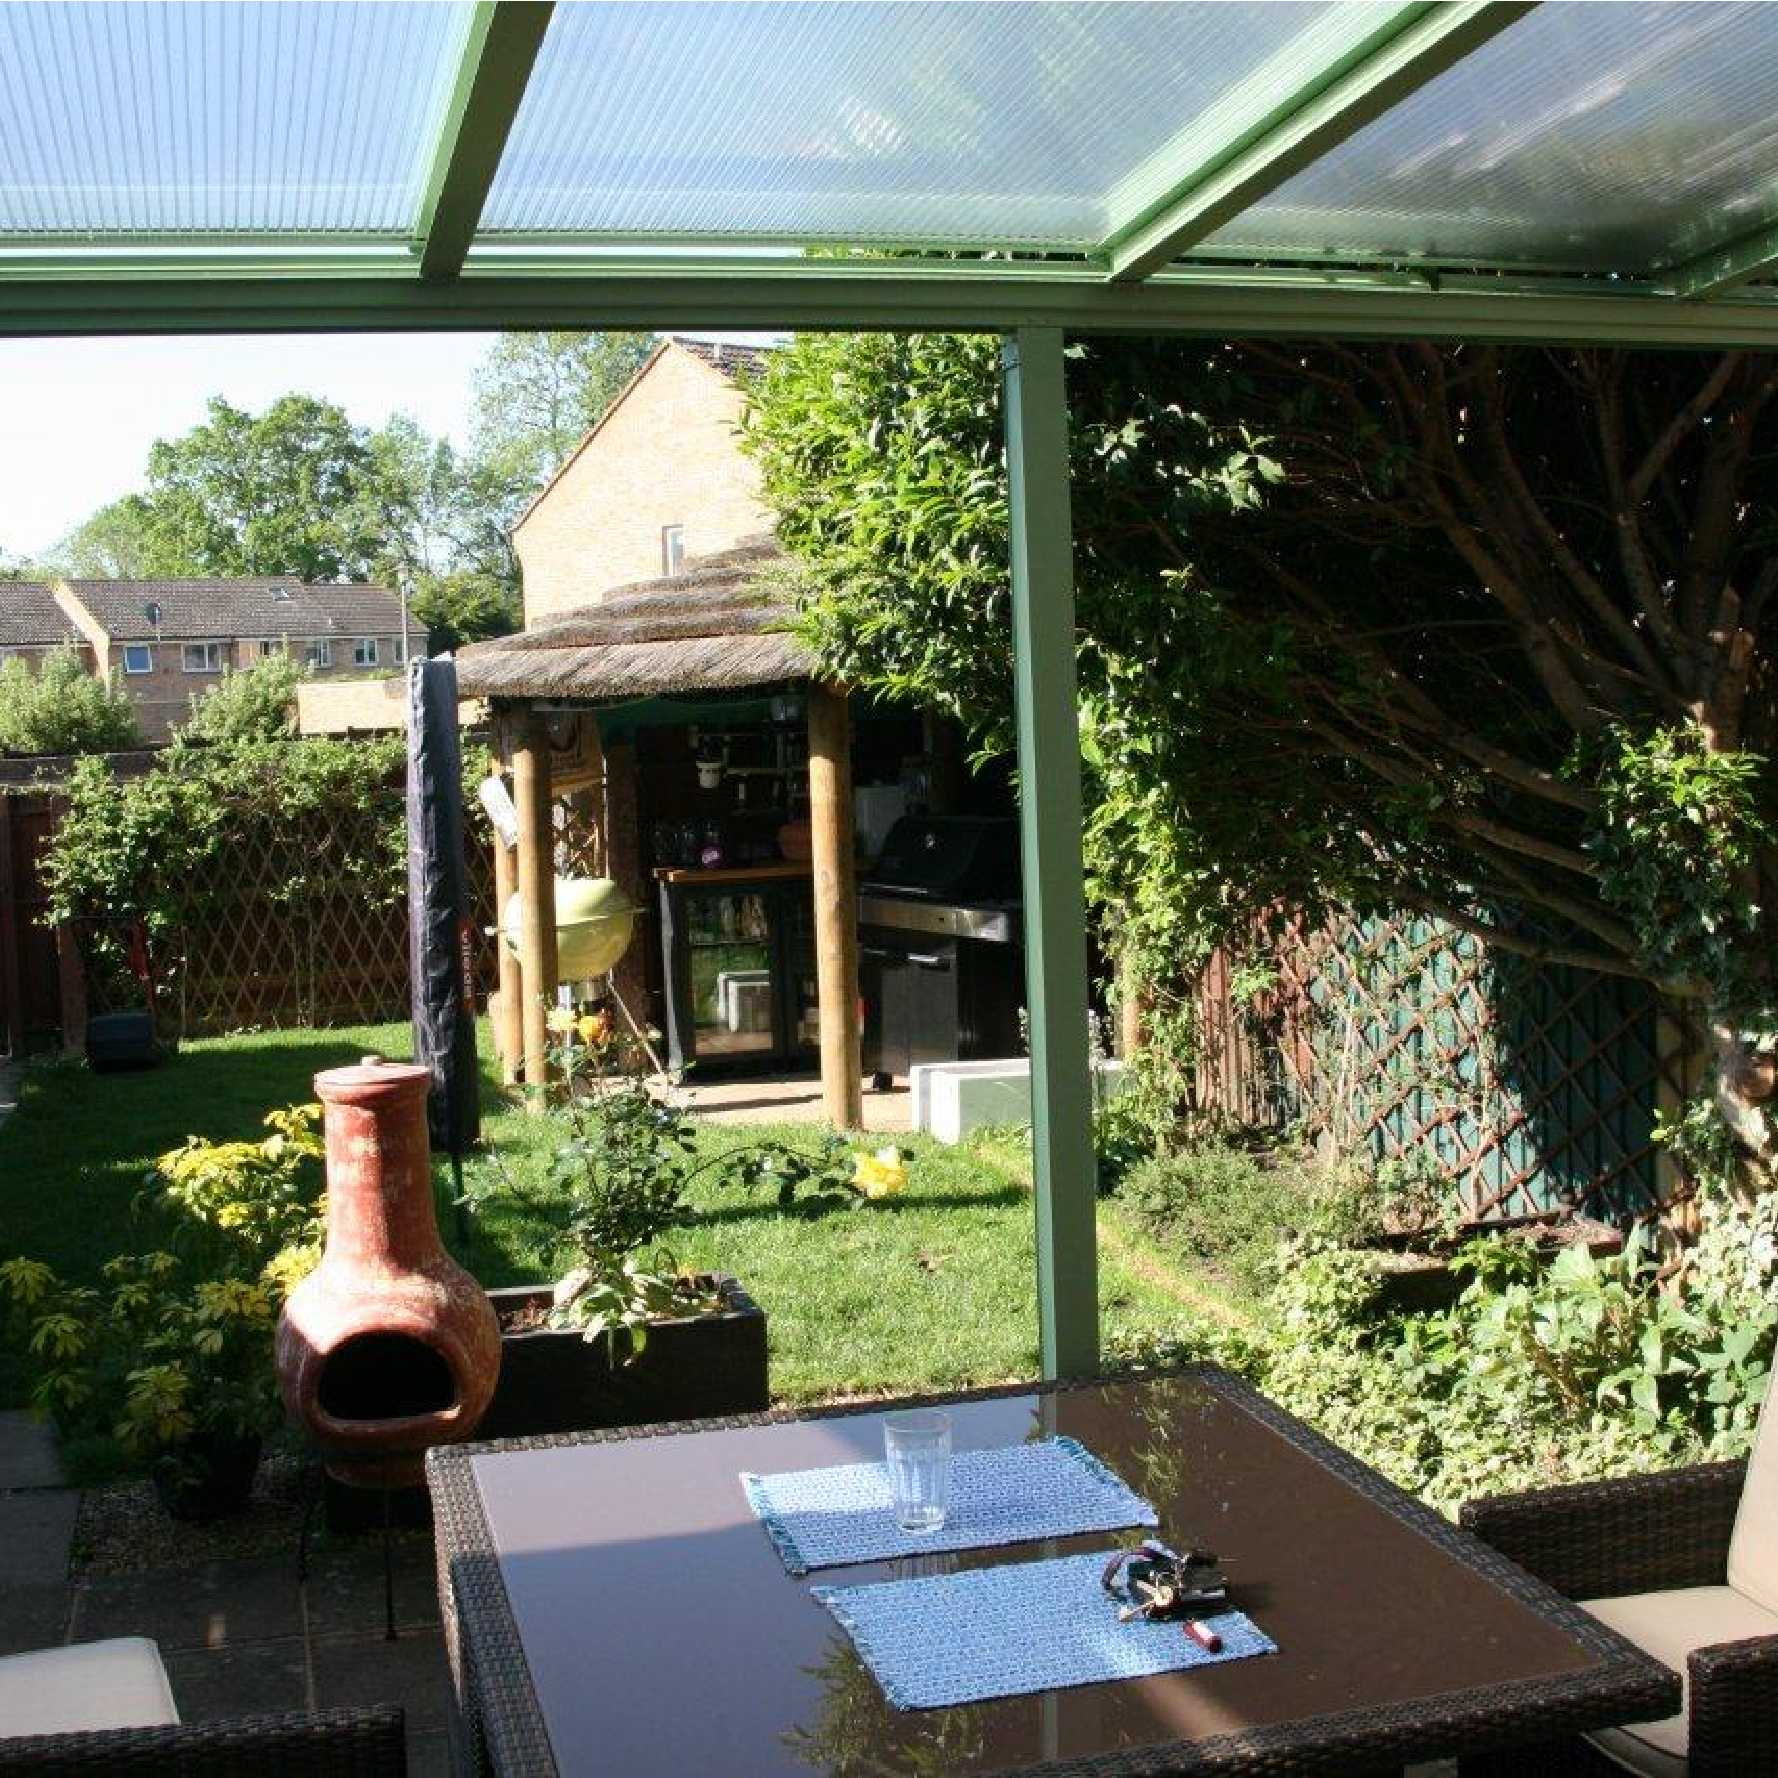 Affordable Omega Smart Lean-To Canopy with 16mm Polycarbonate Glazing - 2.1m (W) x 2.5m (P), (2) Supporting Posts